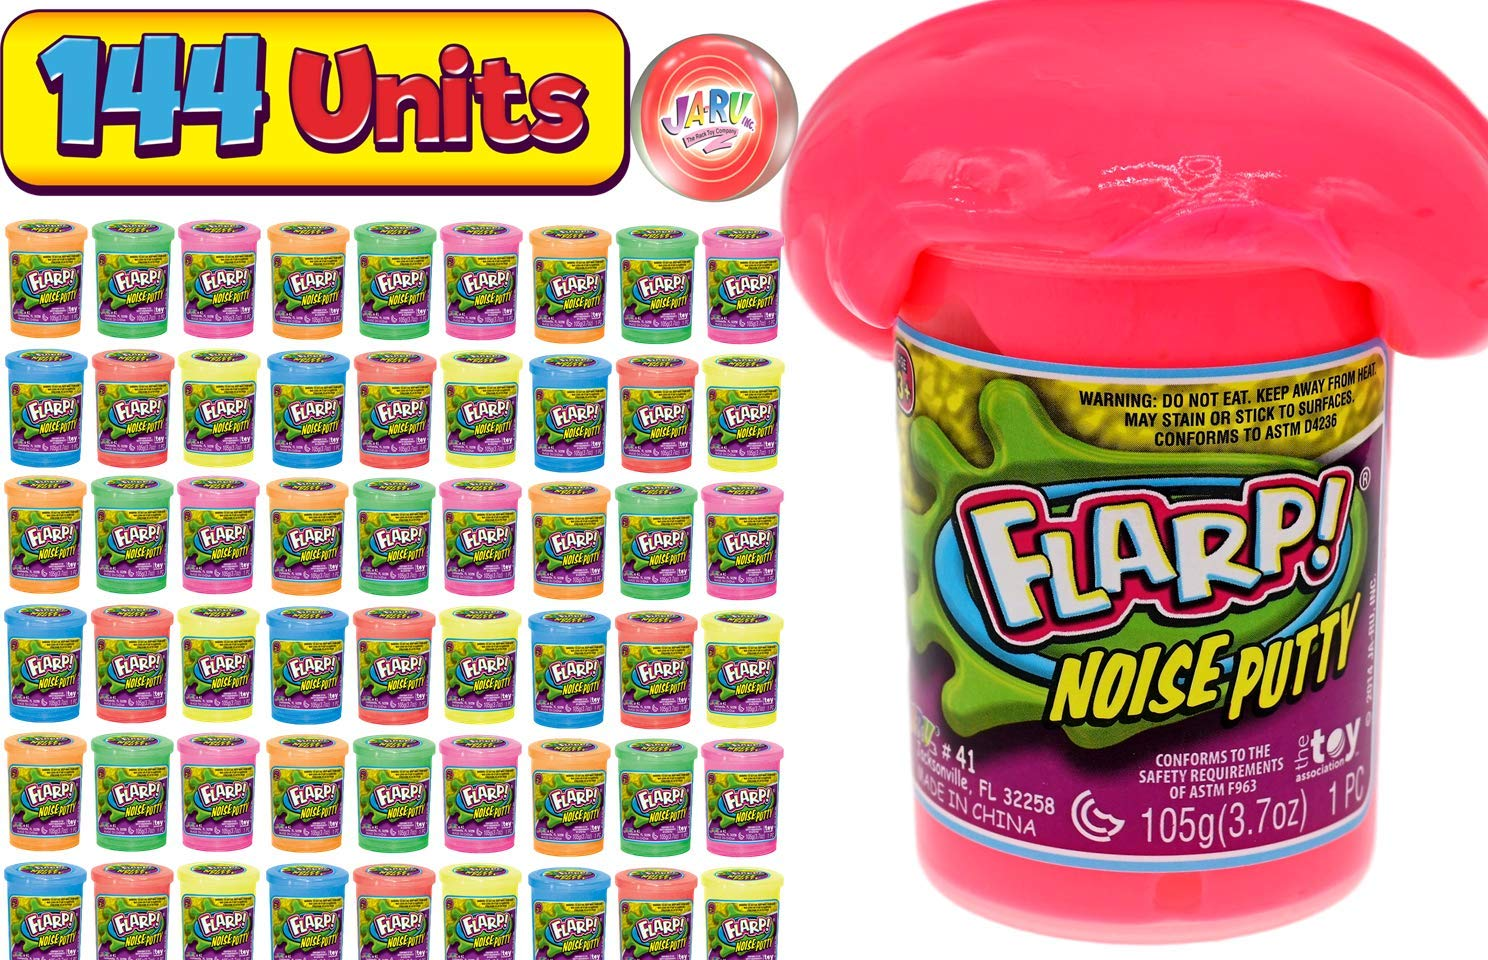 JA-RU Flarp Noise Putty Scented (144 Units Assorted) Squishy Sensory Toys for Easter, ADHD Autism Stress Toy Party Favors in Bulk Party Supplies Fidget for Kids and Adults Boys & Girls. 10041-144p